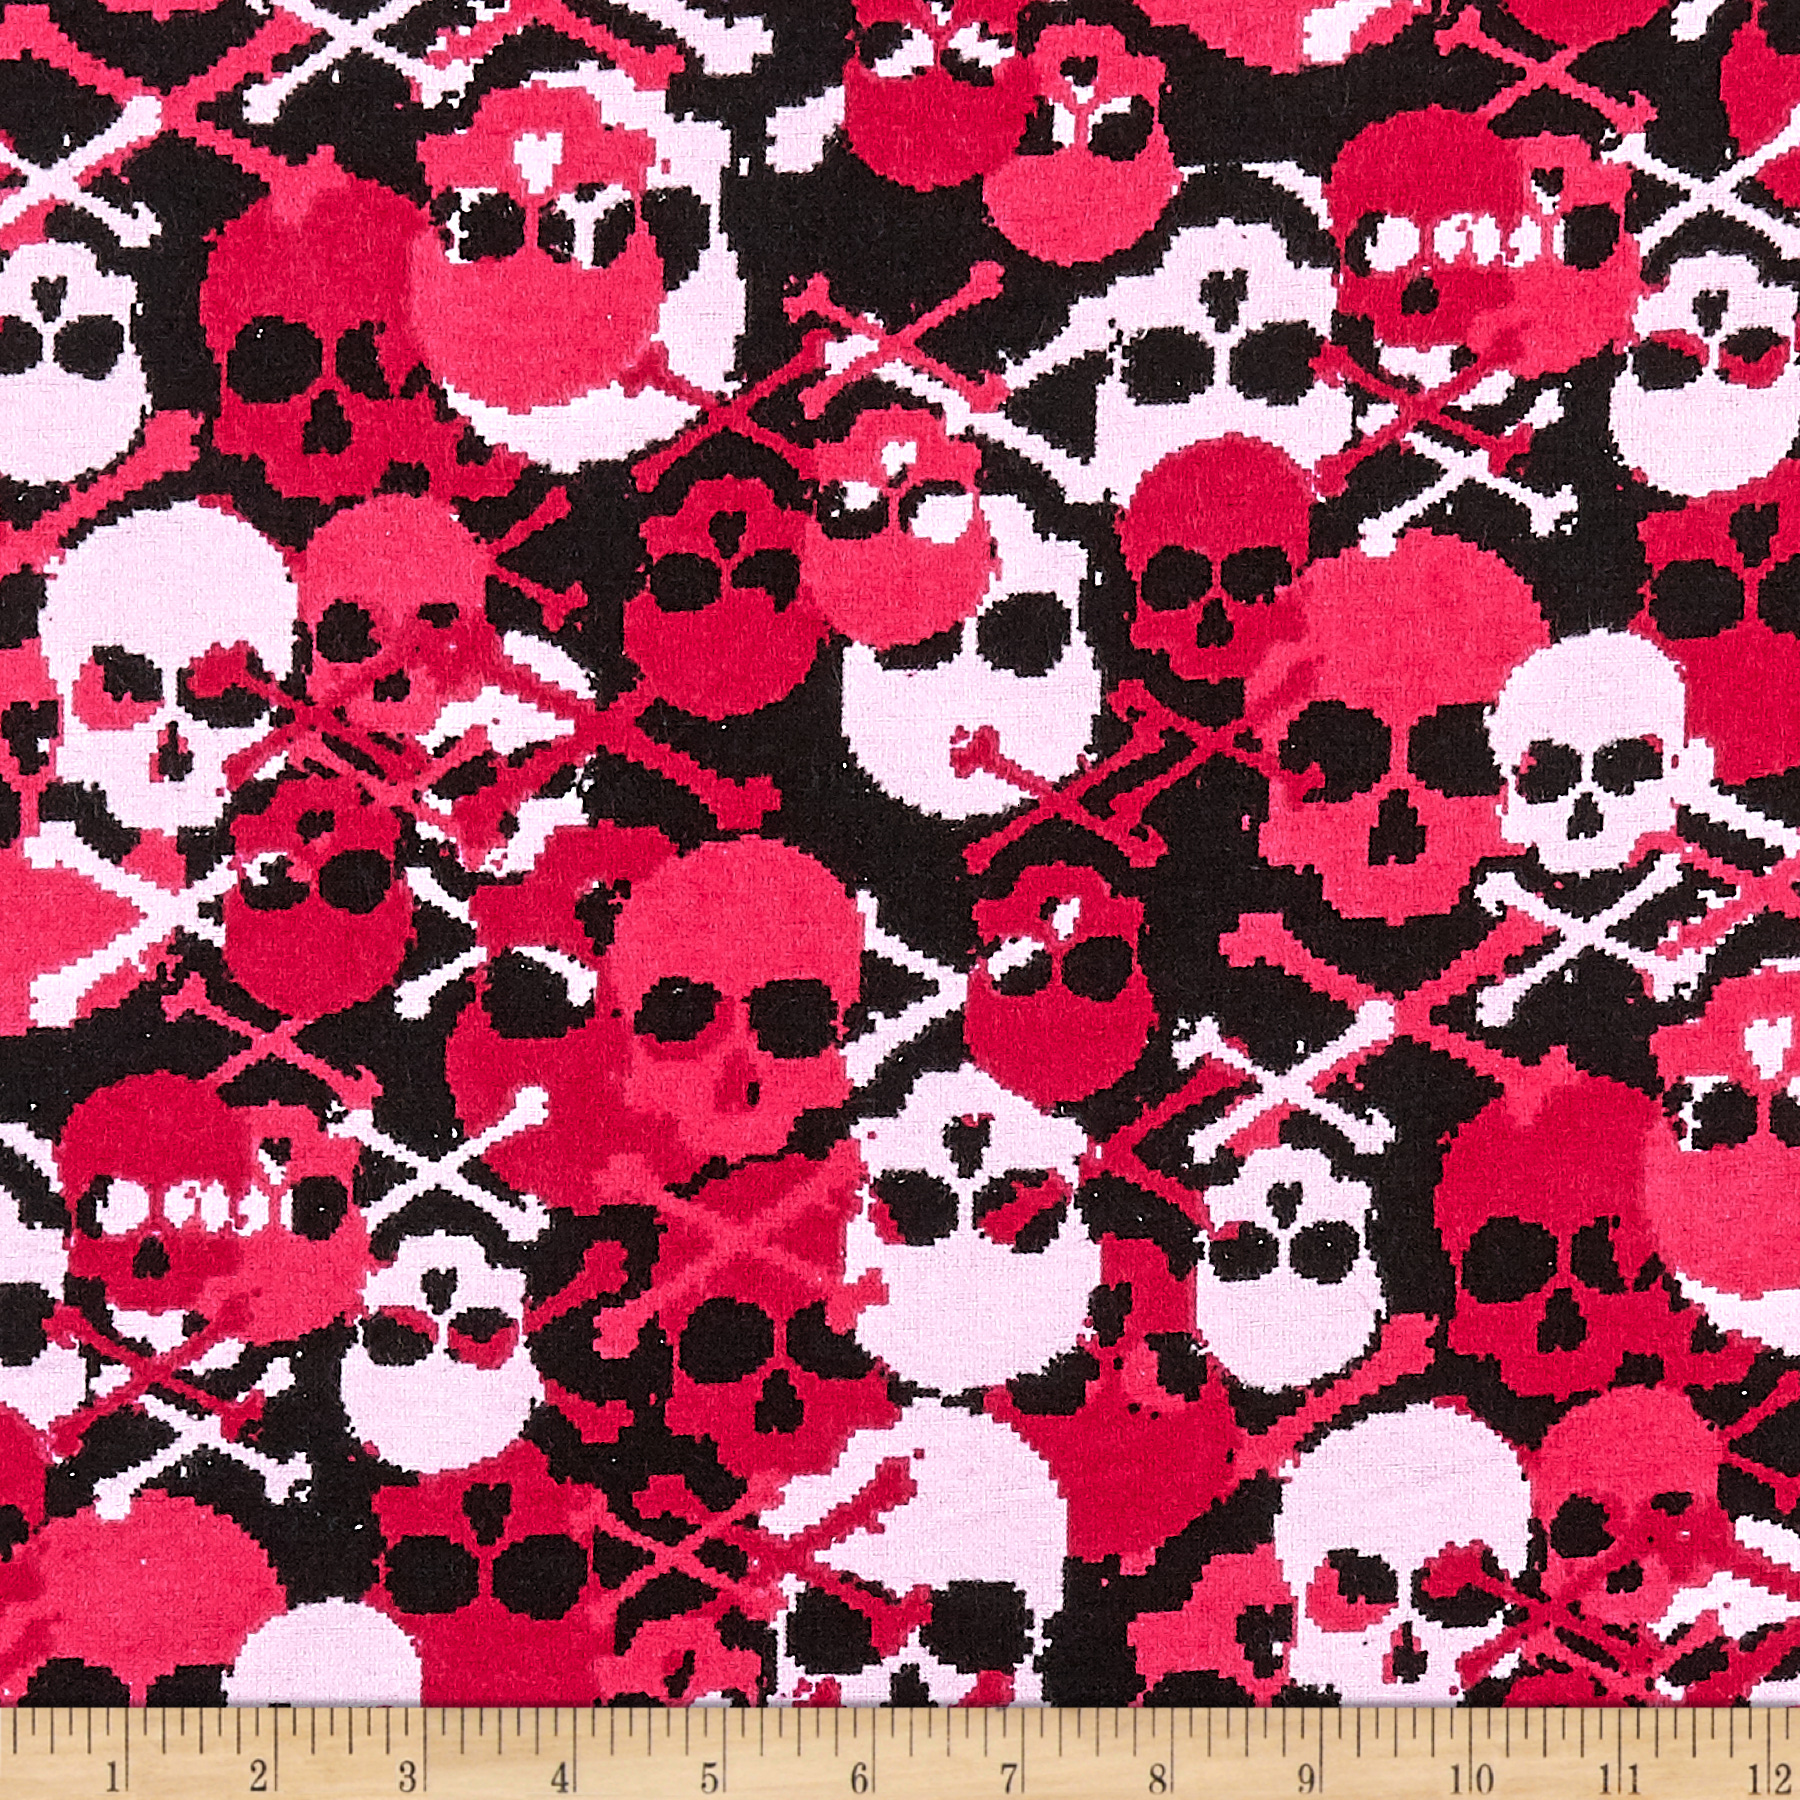 Flannel Skulls Fabric by Fabri-Quilt in USA